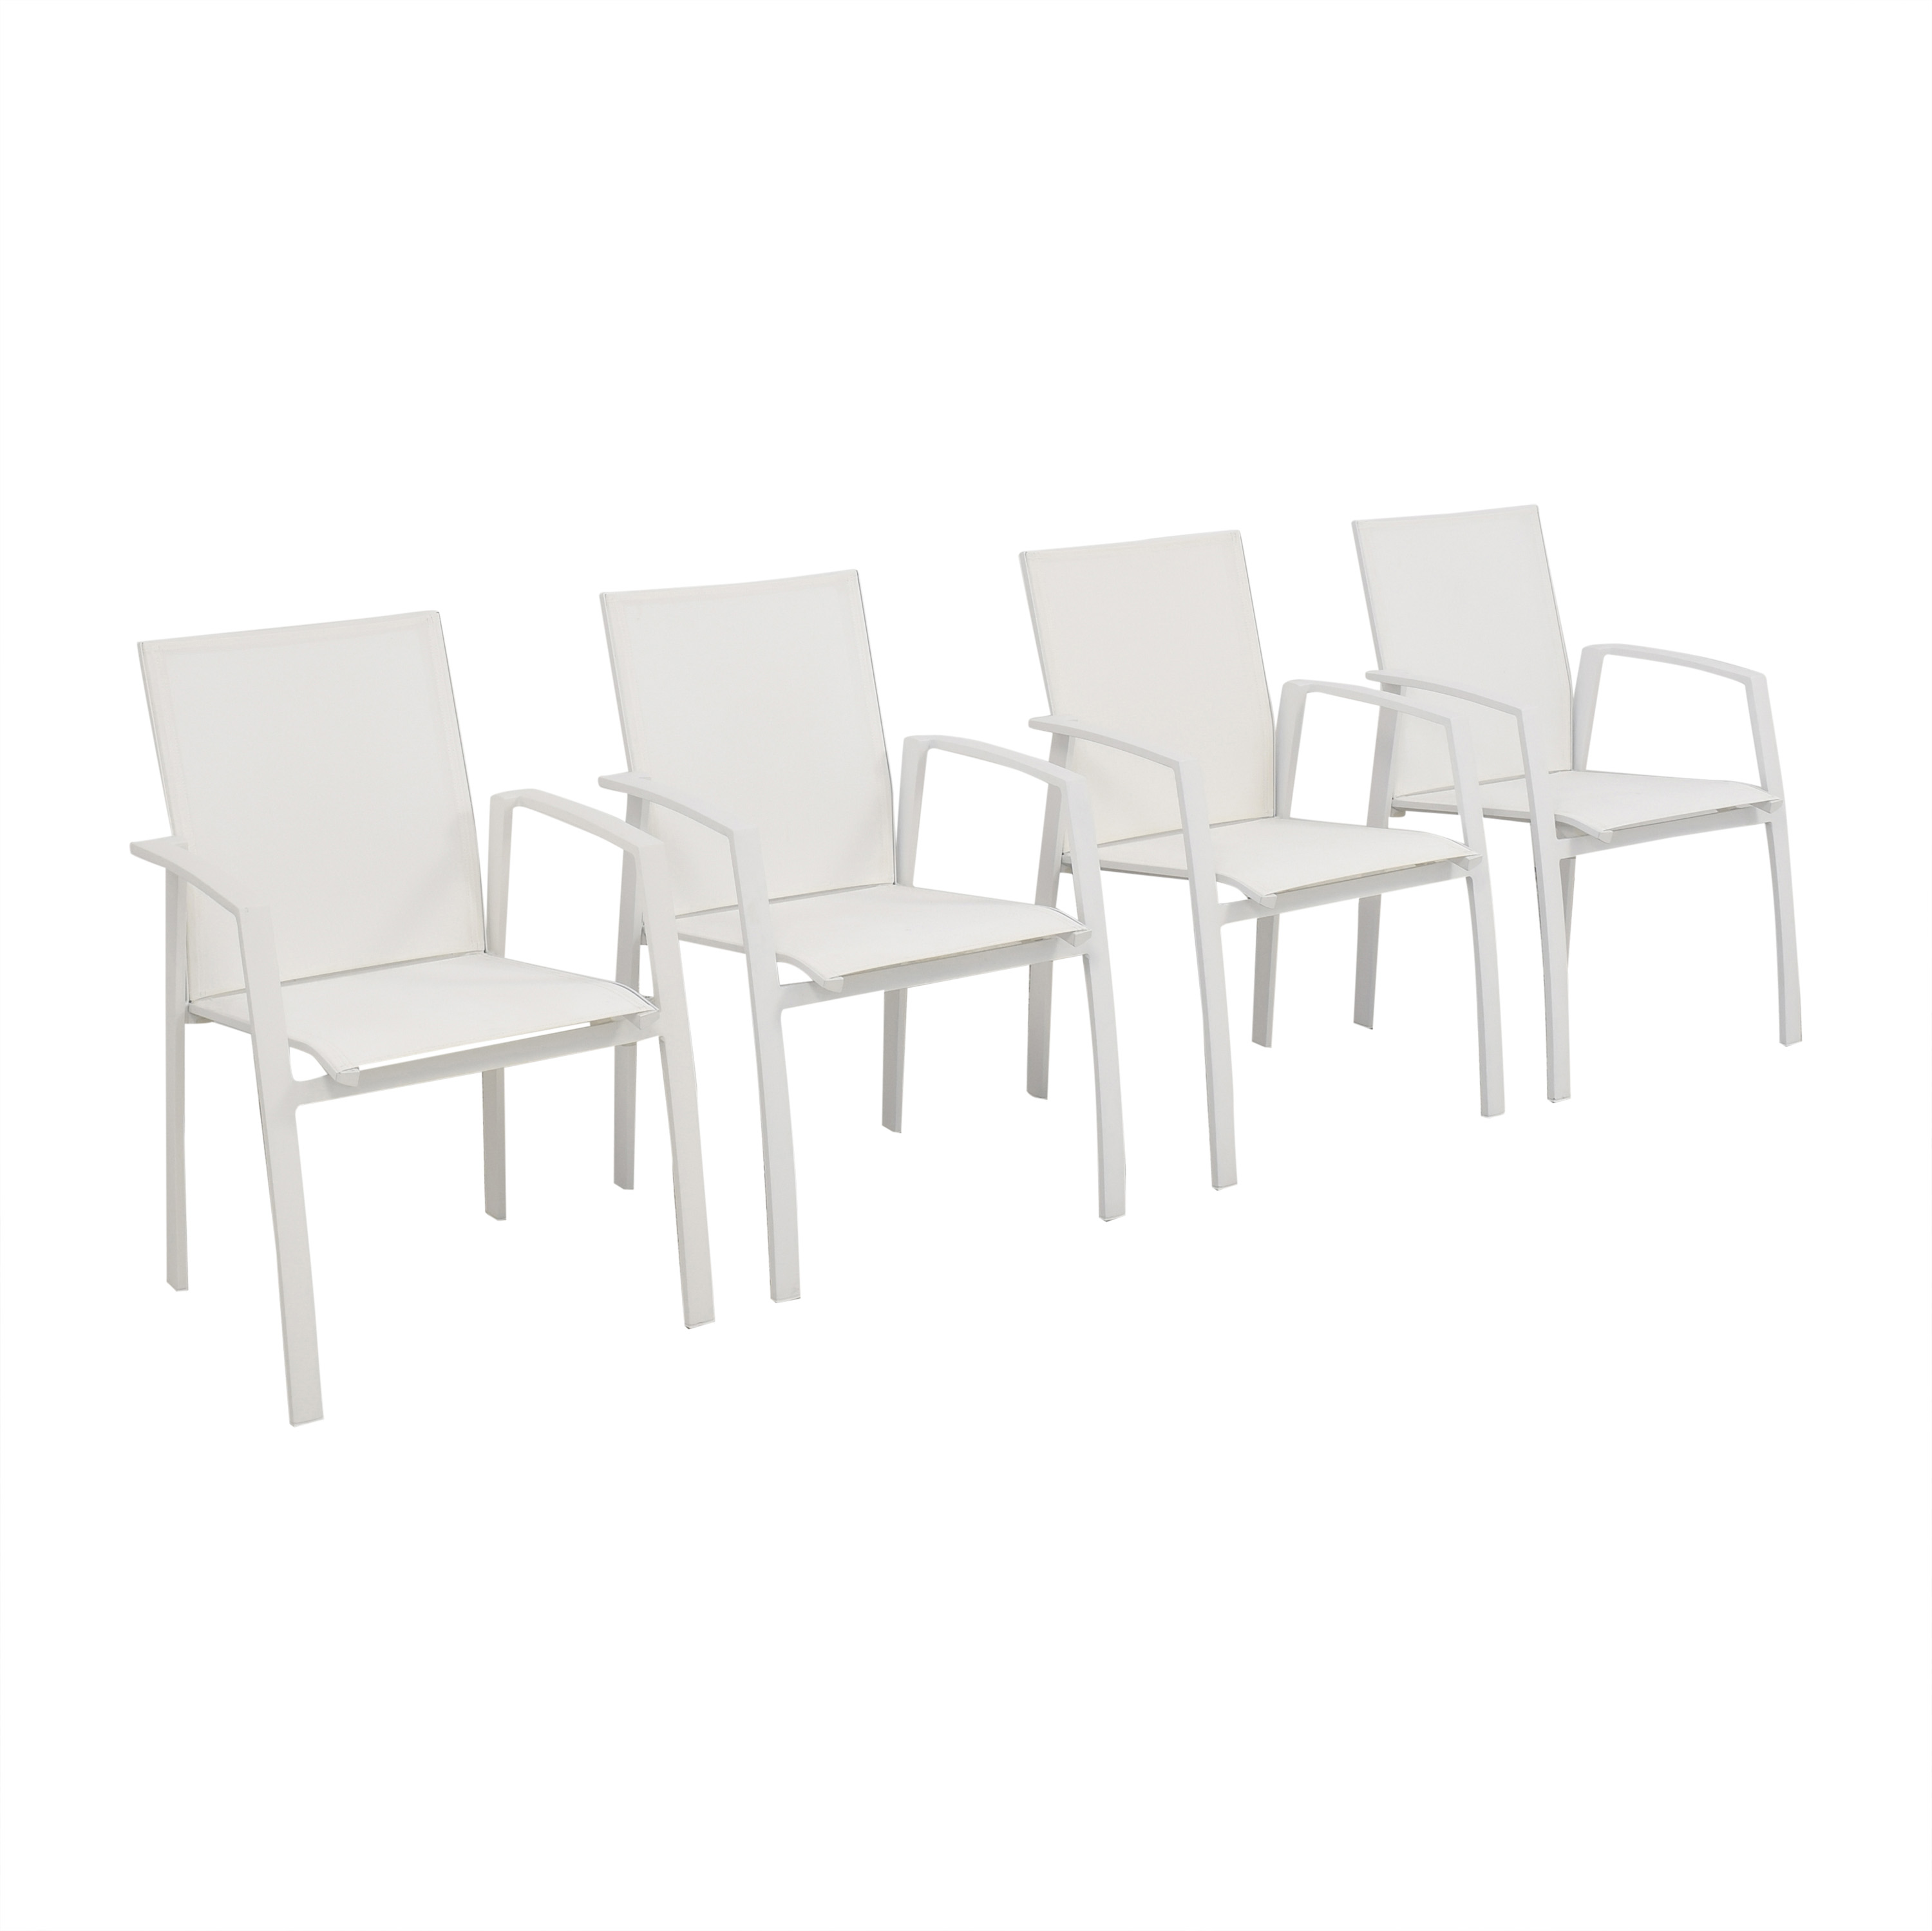 buy Frontgate Newport Dining Chairs Frontgate Dining Chairs